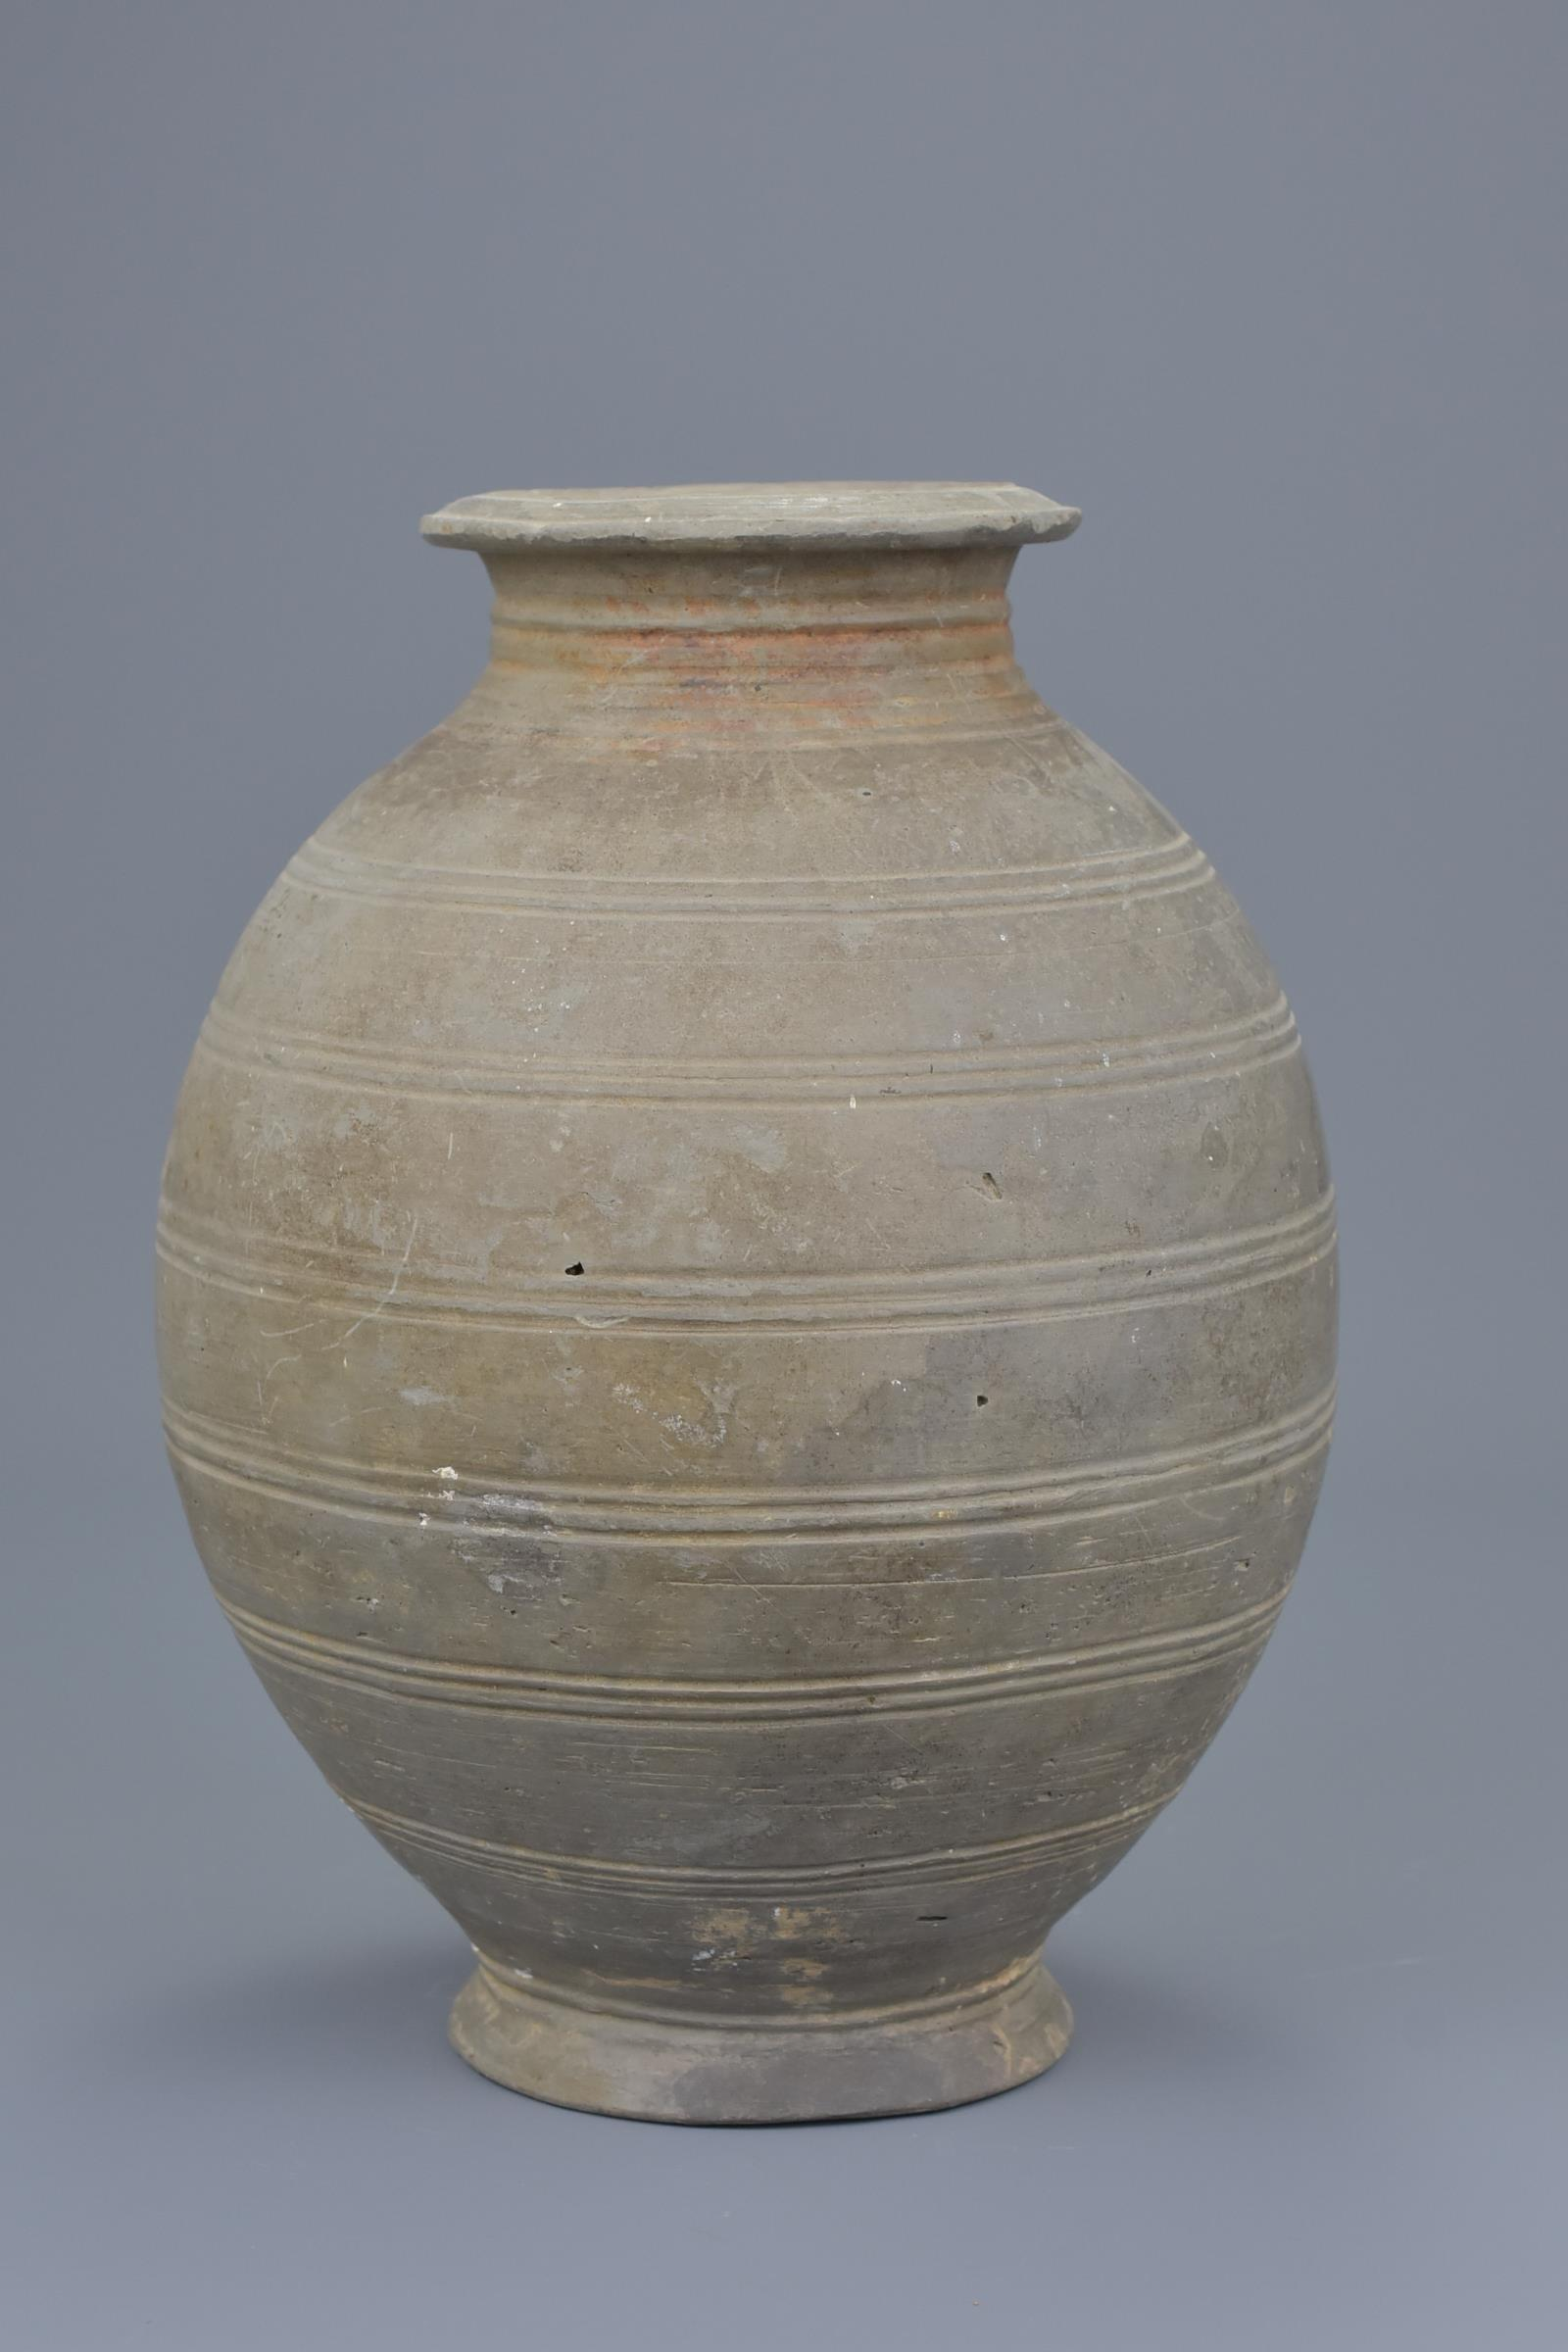 Lot 56 - A Rare Chinese Western Han Dynasty Incised Pottery Jar